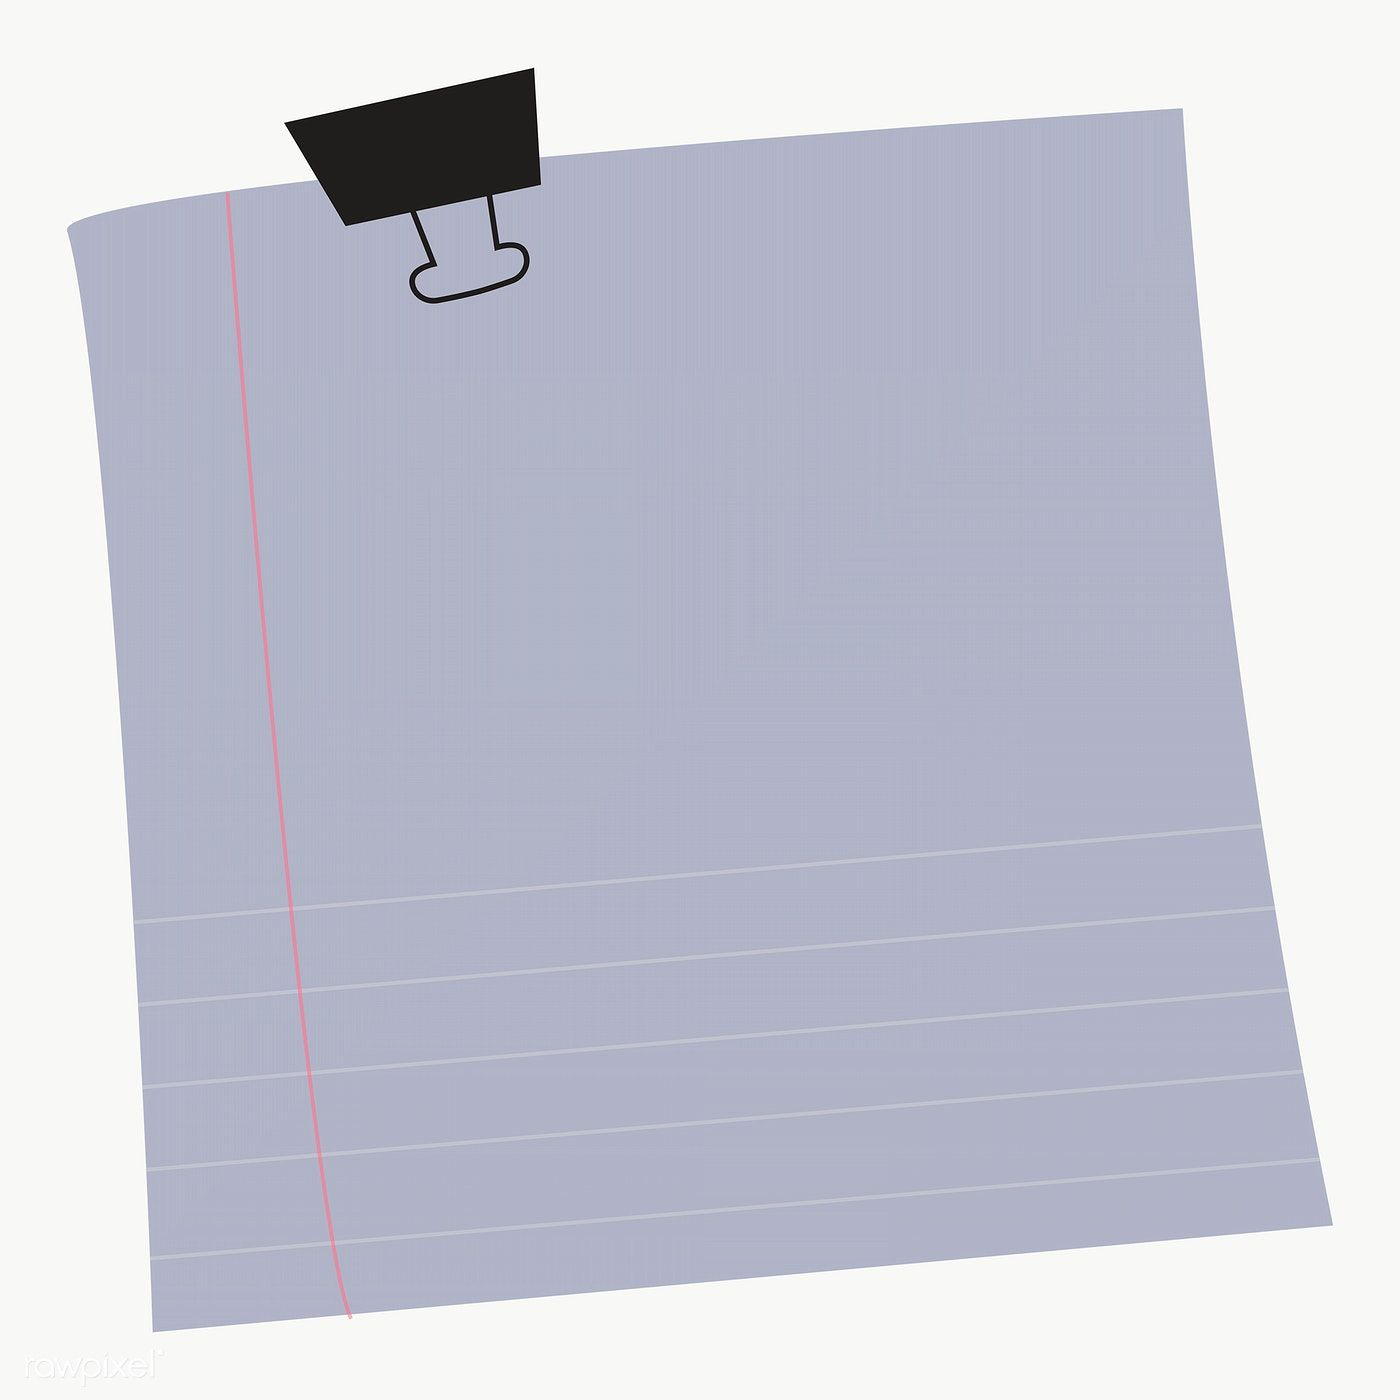 Blank Lined Notepaper Set With Binder Clip On Transparent Premium Image By Rawpixel Com Chayanit Note Paper Notes Design Doodle Frame